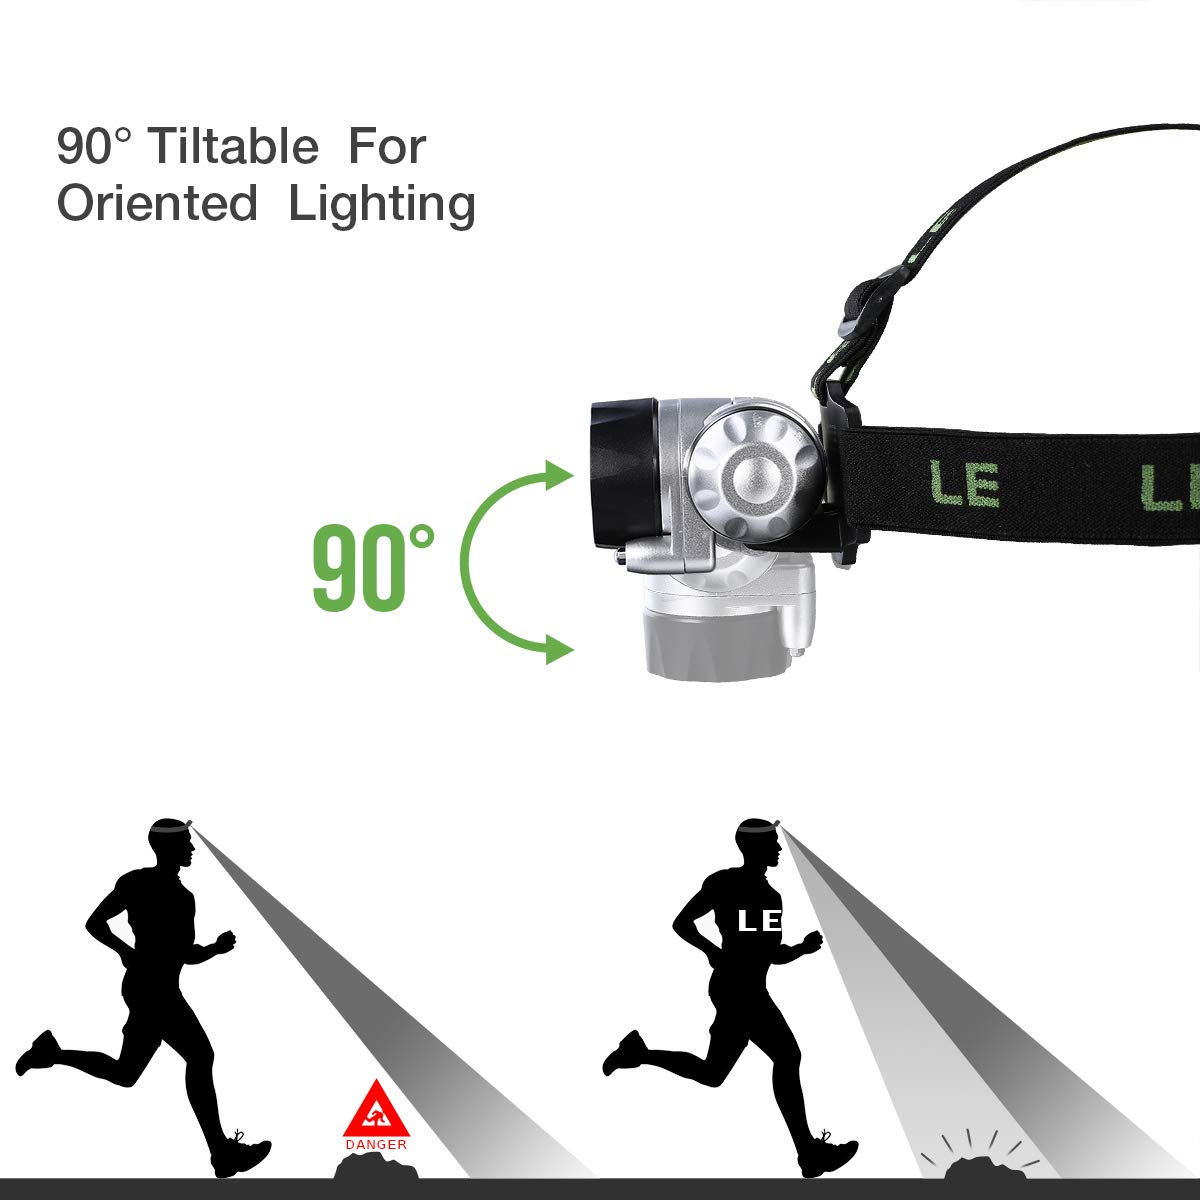 Battery Included Adjustable and Comfortable Headband 90/° Tiltable lighting Lightweight Hiking and Outdoors LE Headlamp Flashlight with 4 Lighting Modes Perfect Headlight for Camping Waterproof